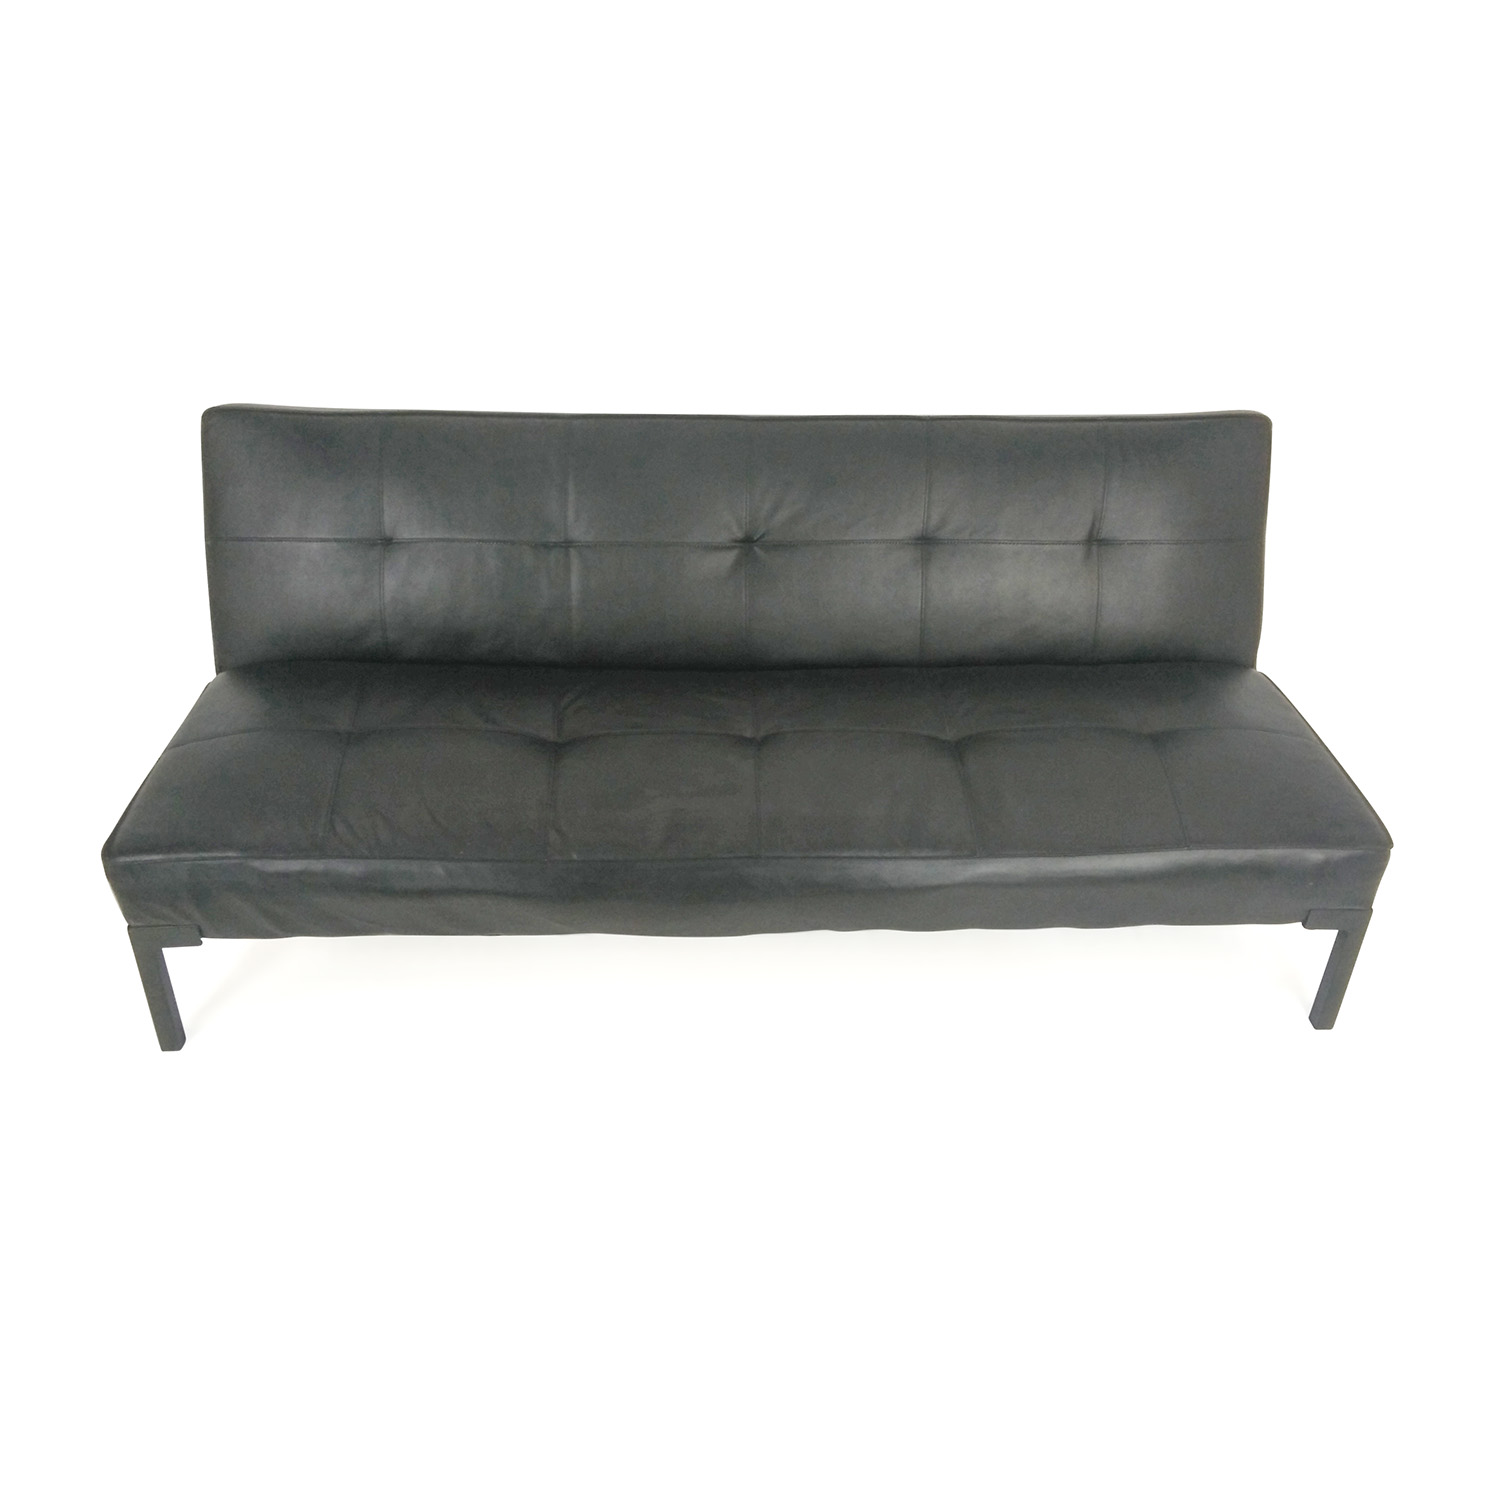 ... French Make French Make Leather Adjustable Futon Coupon ...